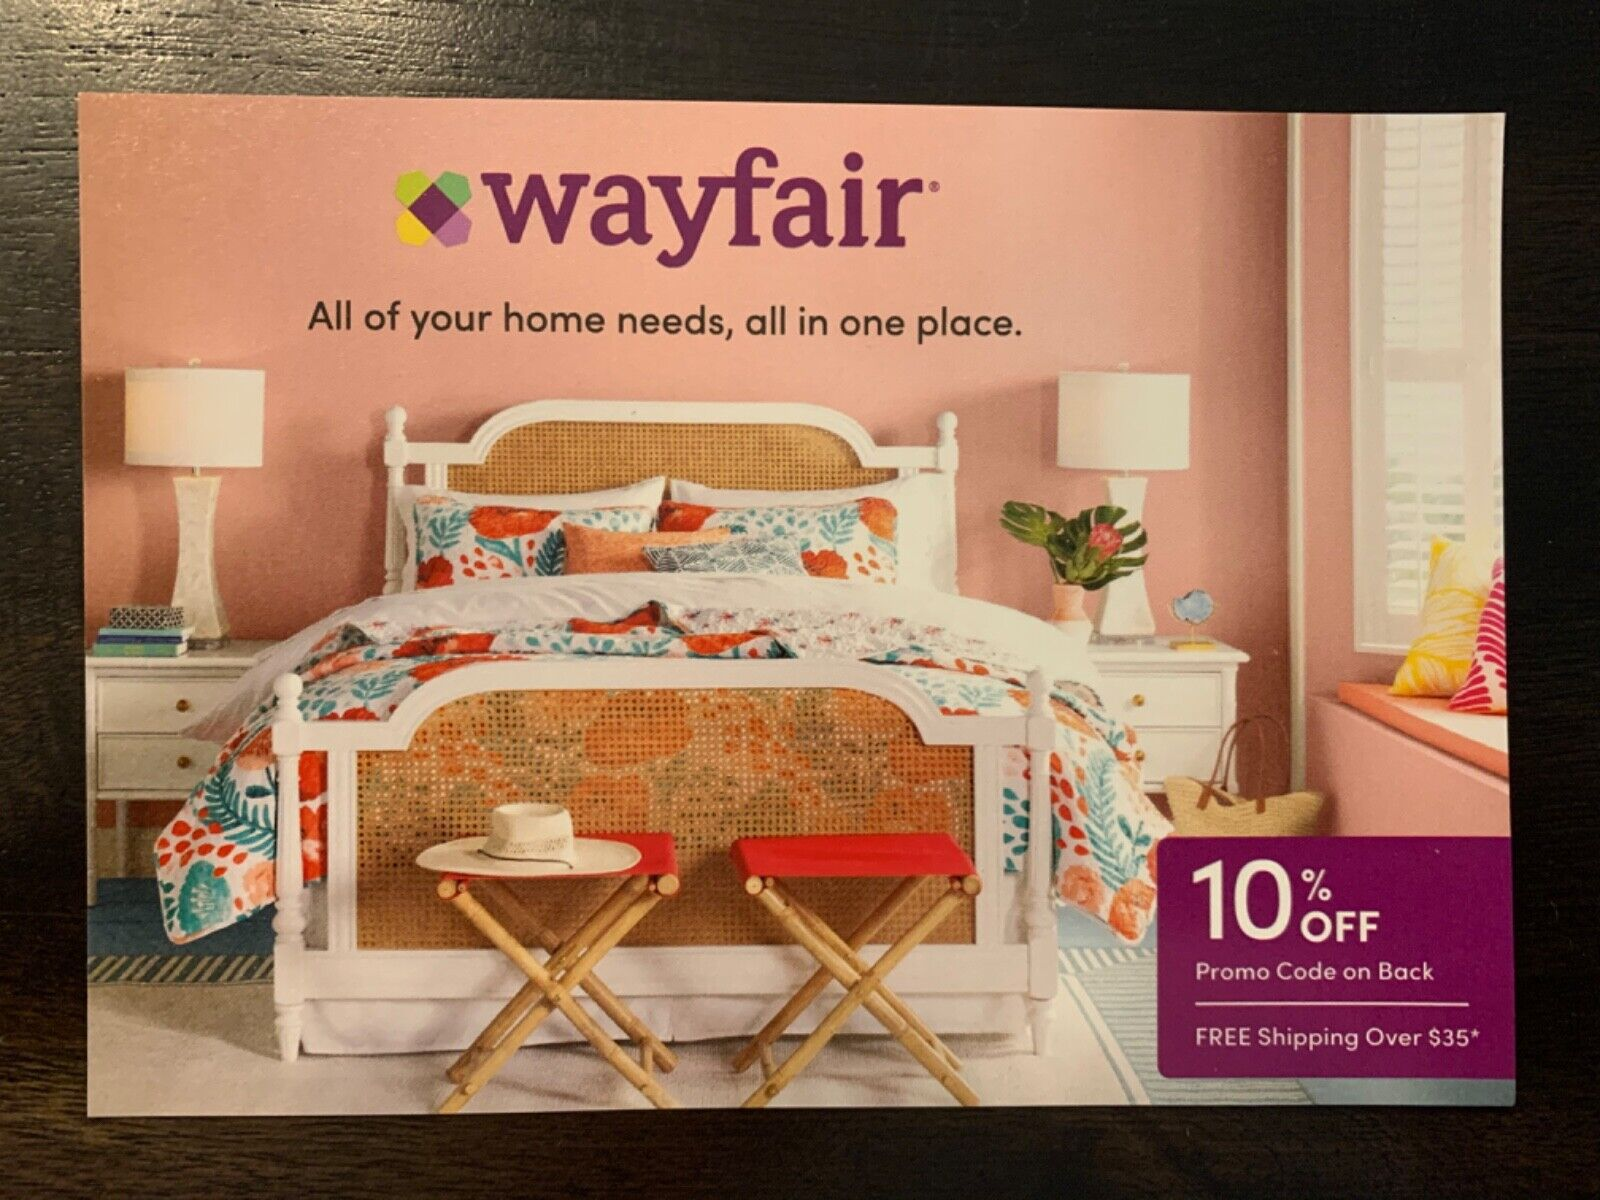 WAYFAIR.COM COUPON Promo Code 10 Off First Order - Exp 11/31 FAST DELIVERY  - $4.95